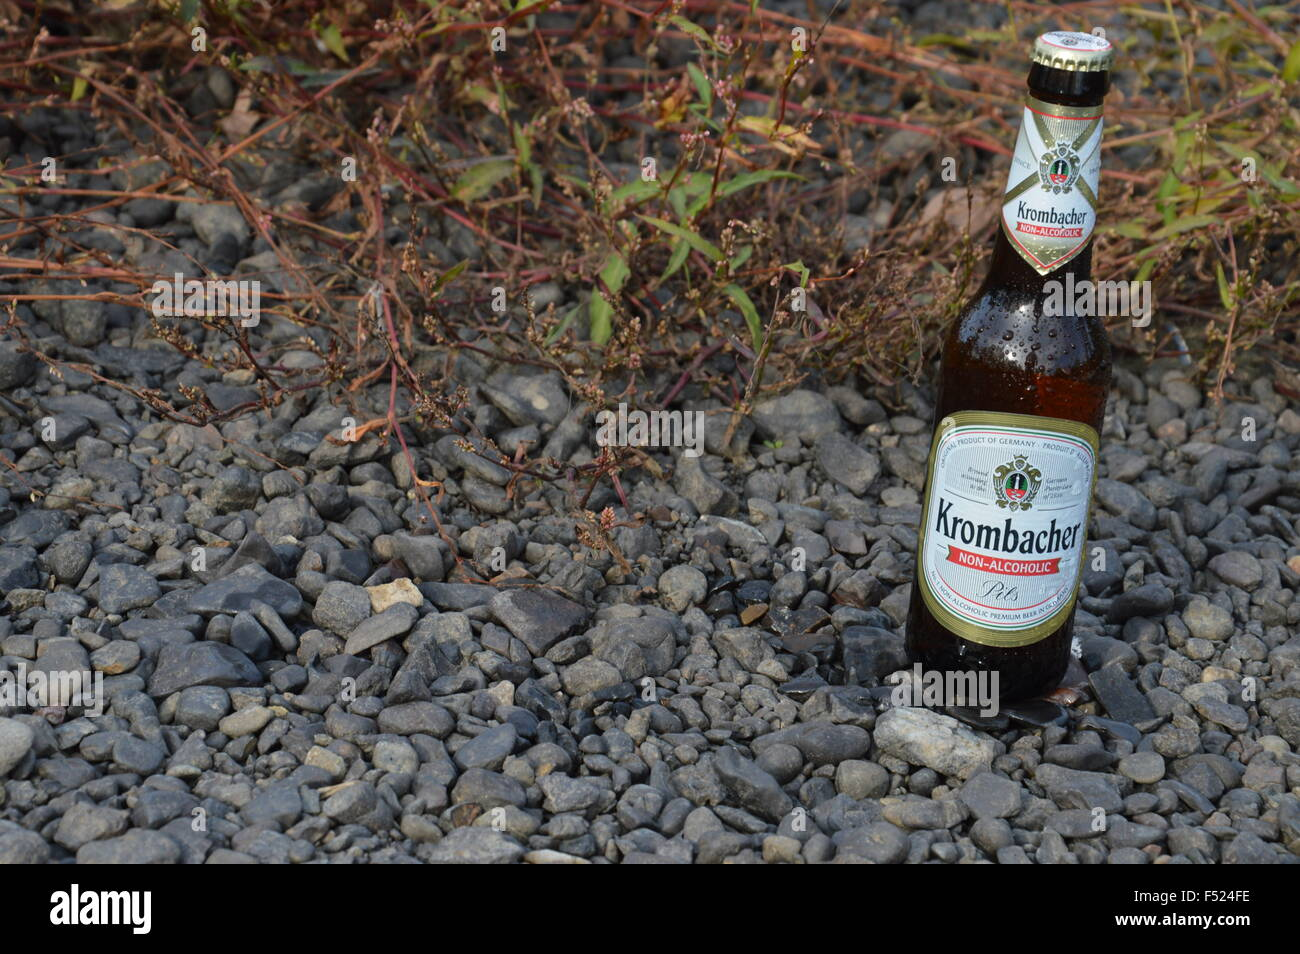 illustrative bottle non alcoholic beer in nature - Stock Image